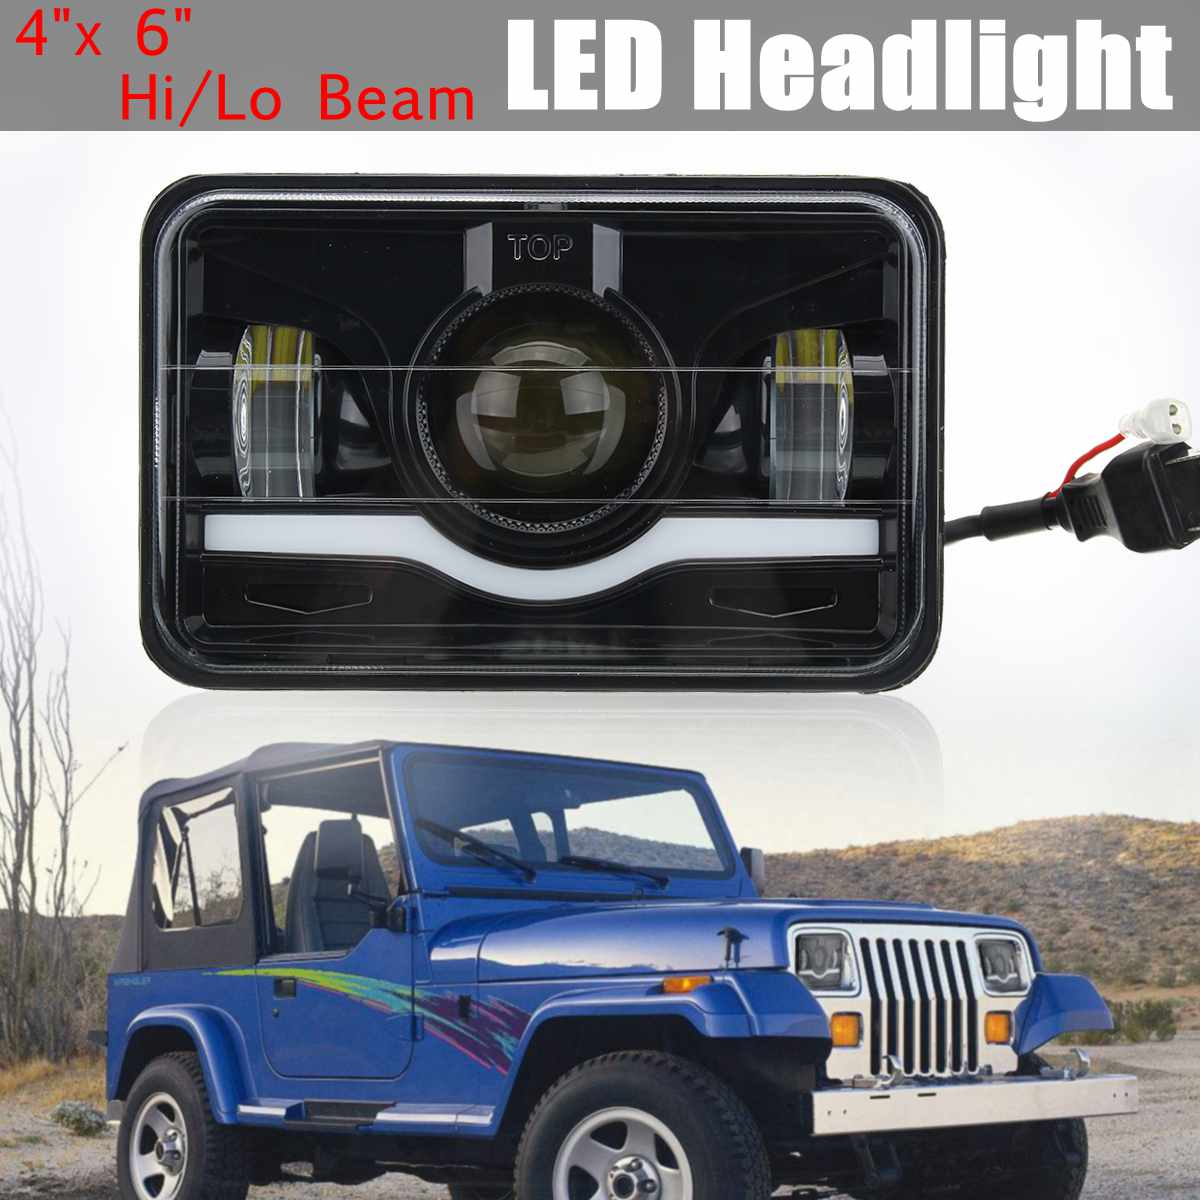 4 X 6 LED Headlight Red & White DRL Hi/Lo Beam Truck Replacement Lamp For Jeep night lord 2pcscar led light h4 headlight head lamp dipped beam low beam or high beam hi lo 6000k white for fit 2011 2015 year